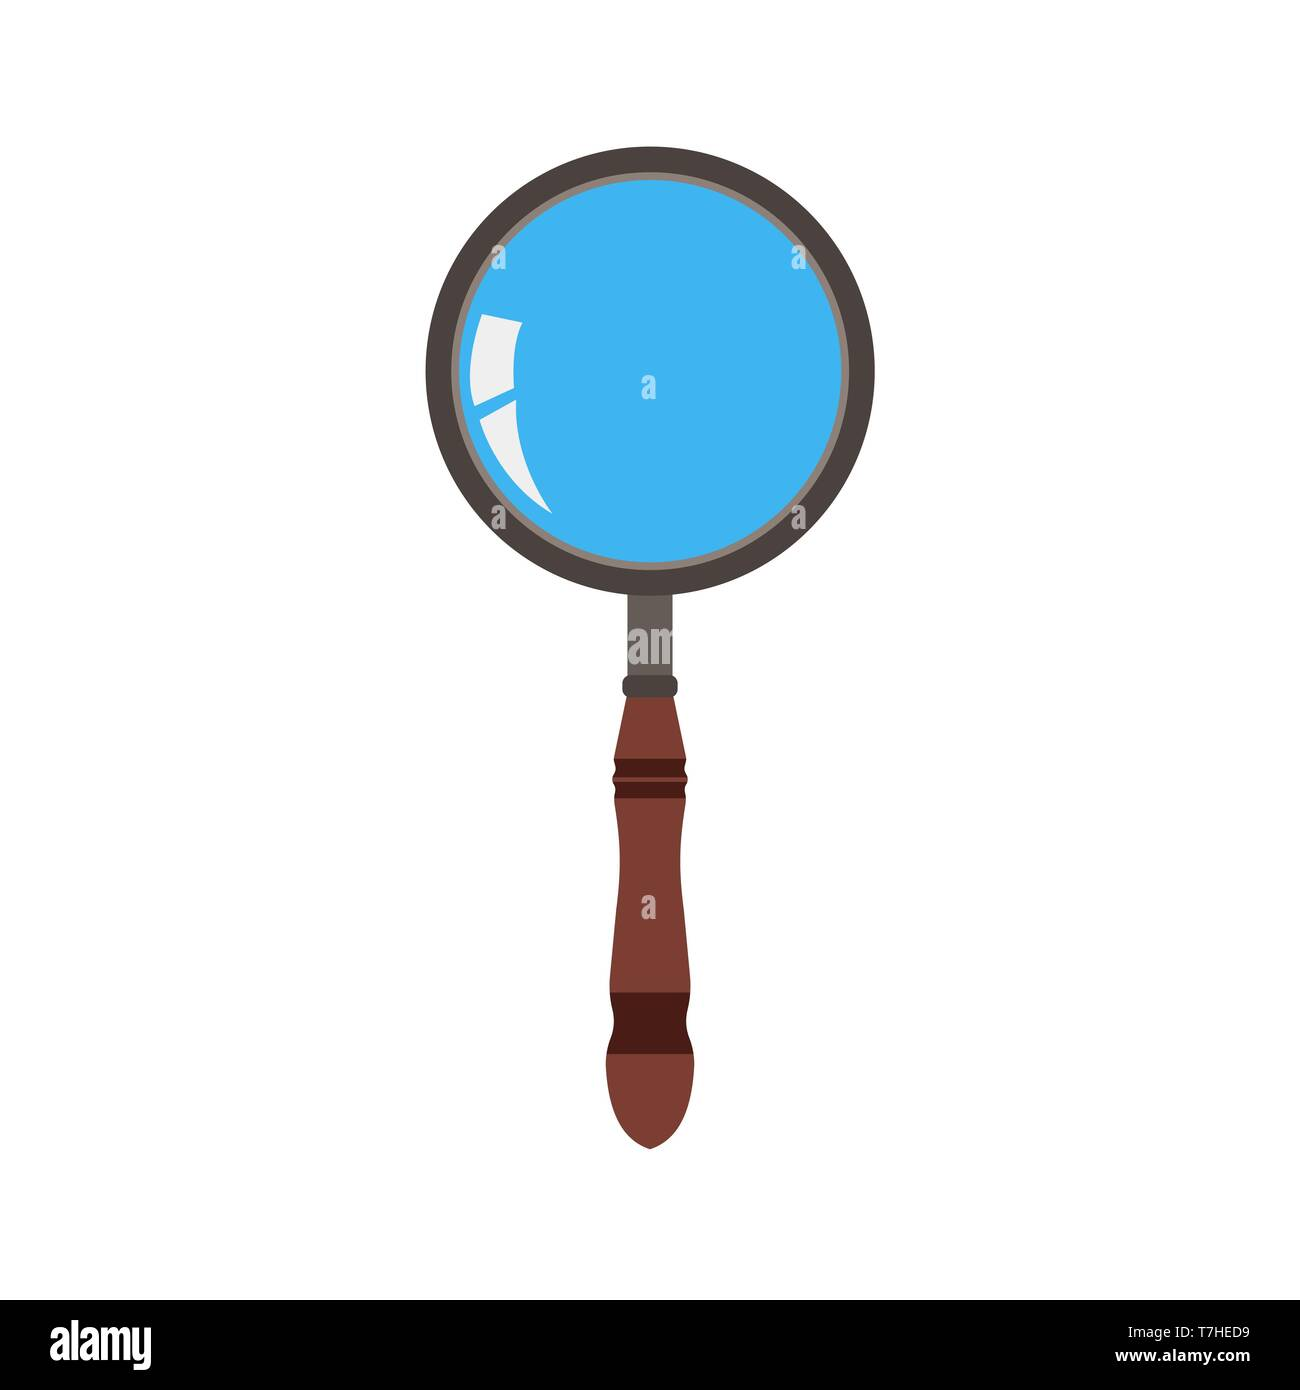 Glass magnifying icon vector search zoom illustration. Magnifier symbol magnify look research lens find loupe sign optical - Stock Image